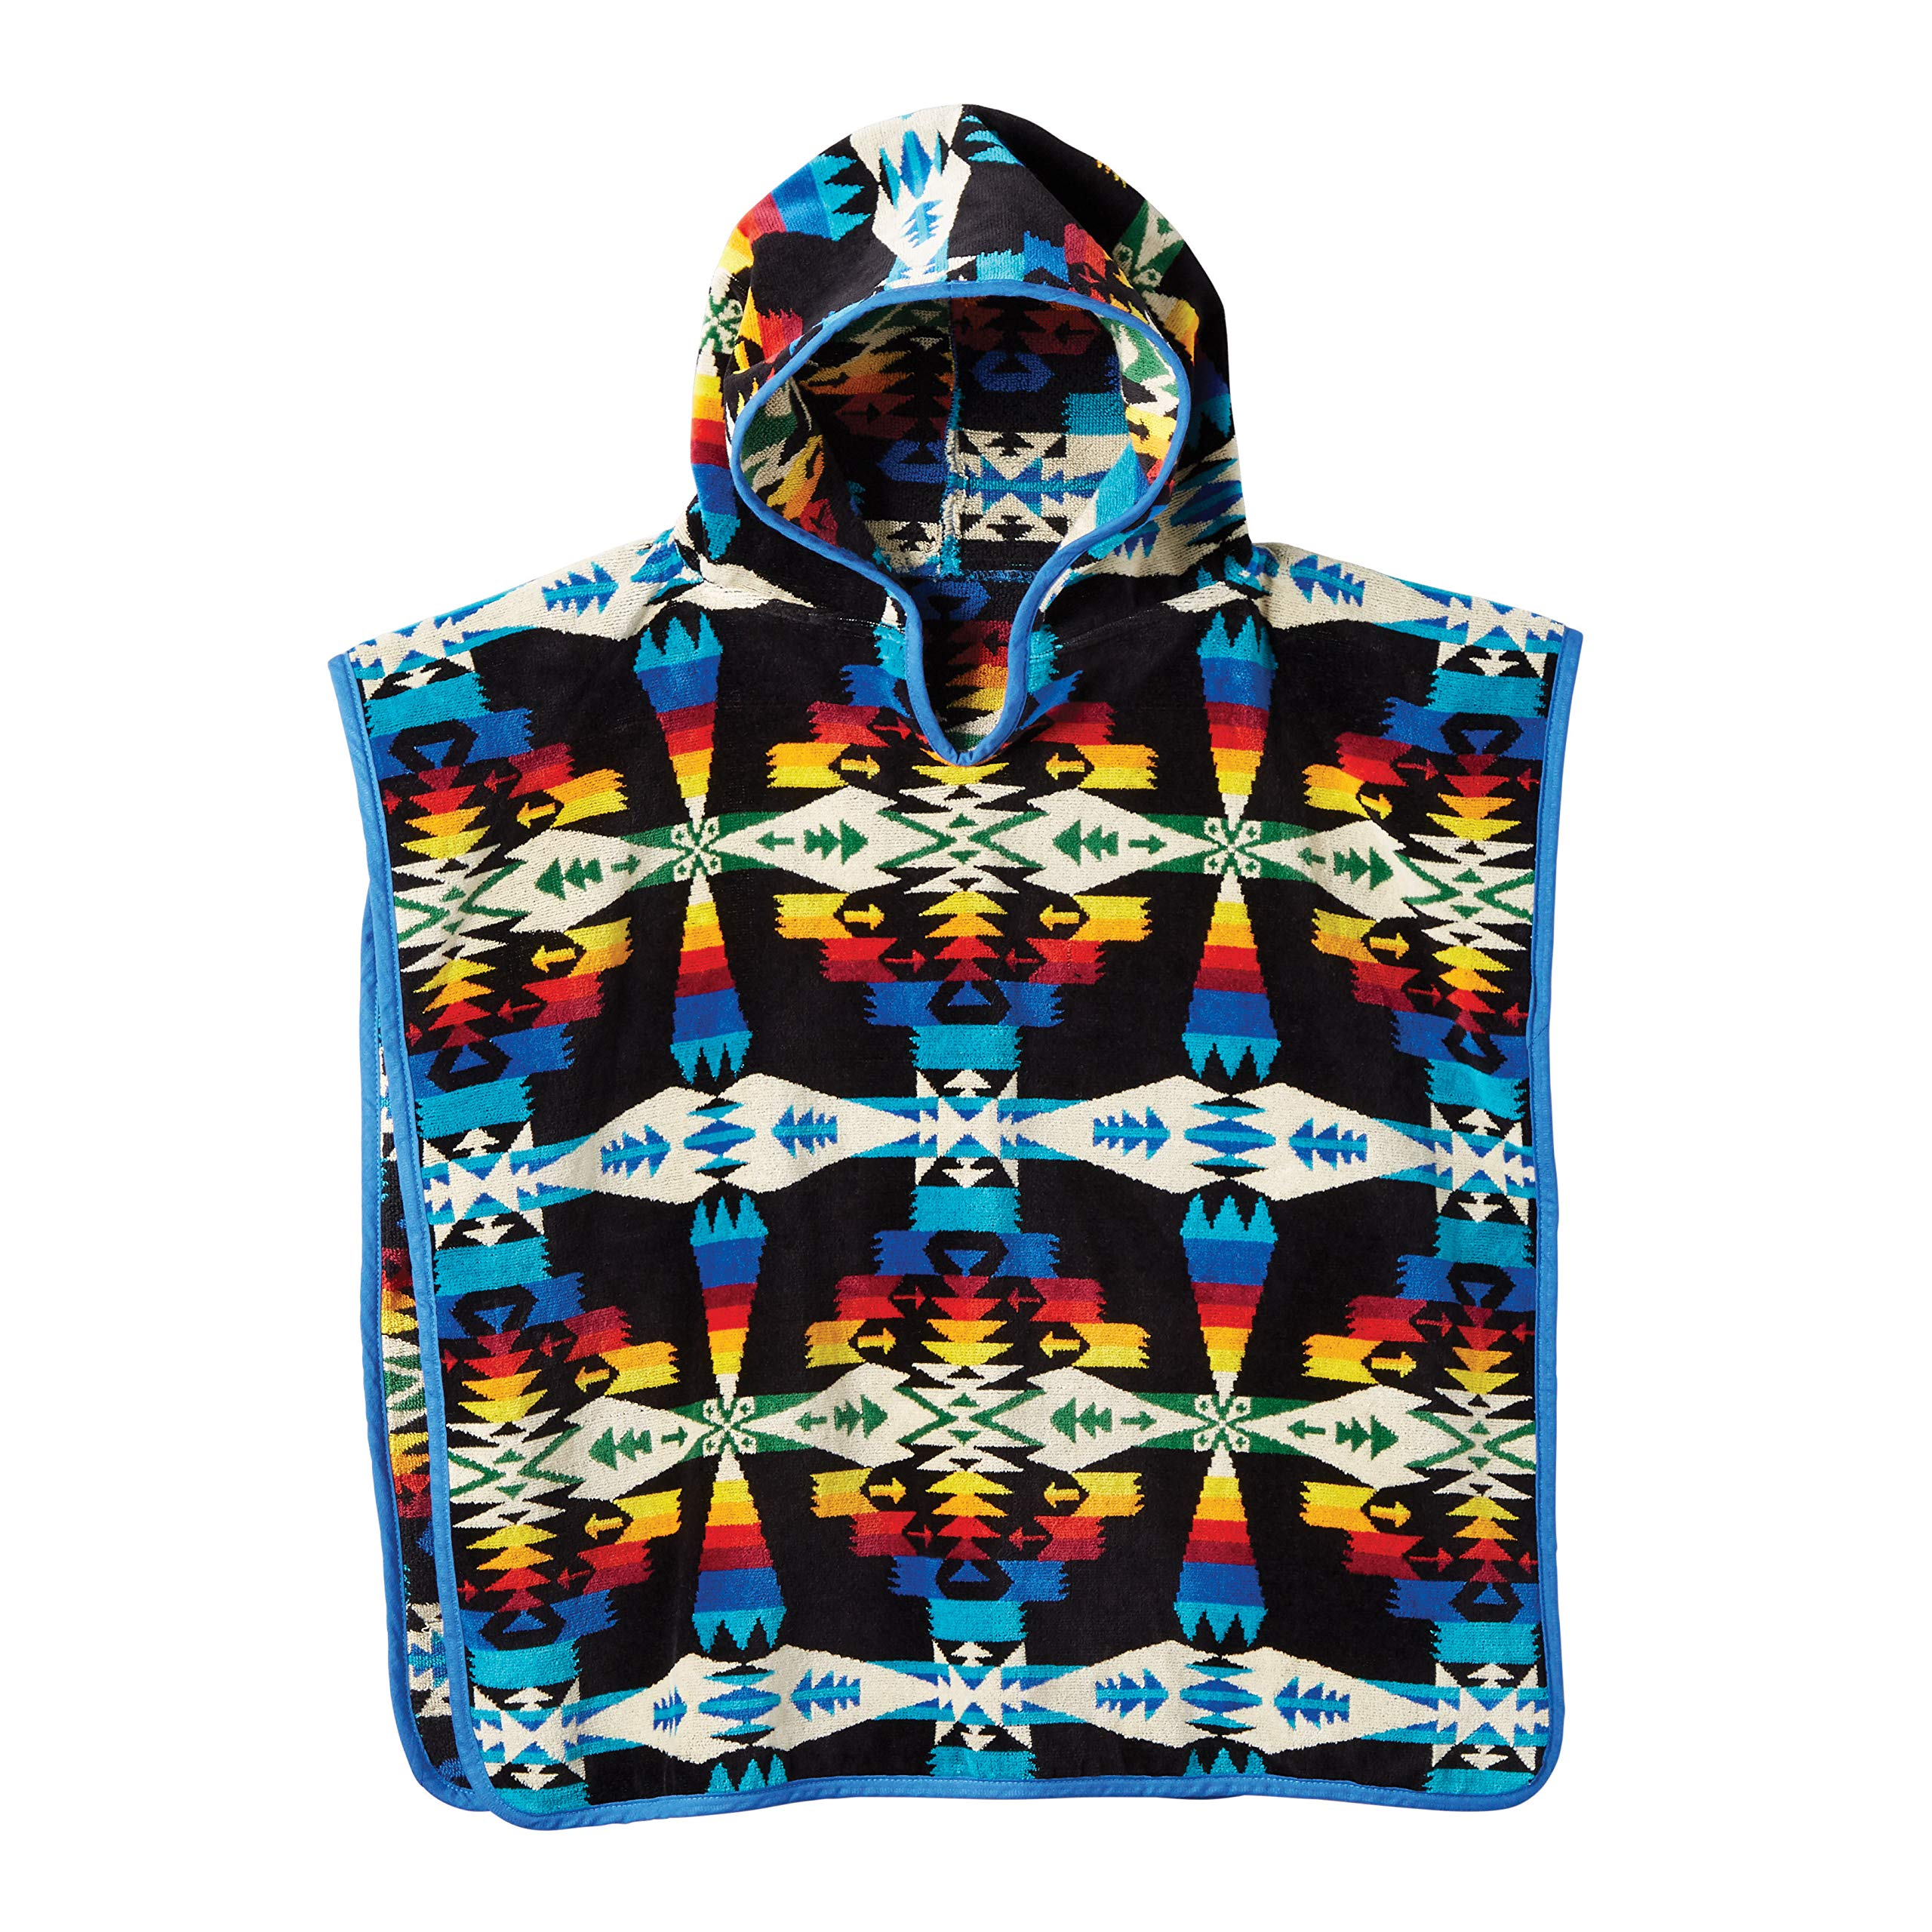 Pendleton Unisex Jacquard Childrens Hooded Towel Tuscon Black One Size by Pendleton